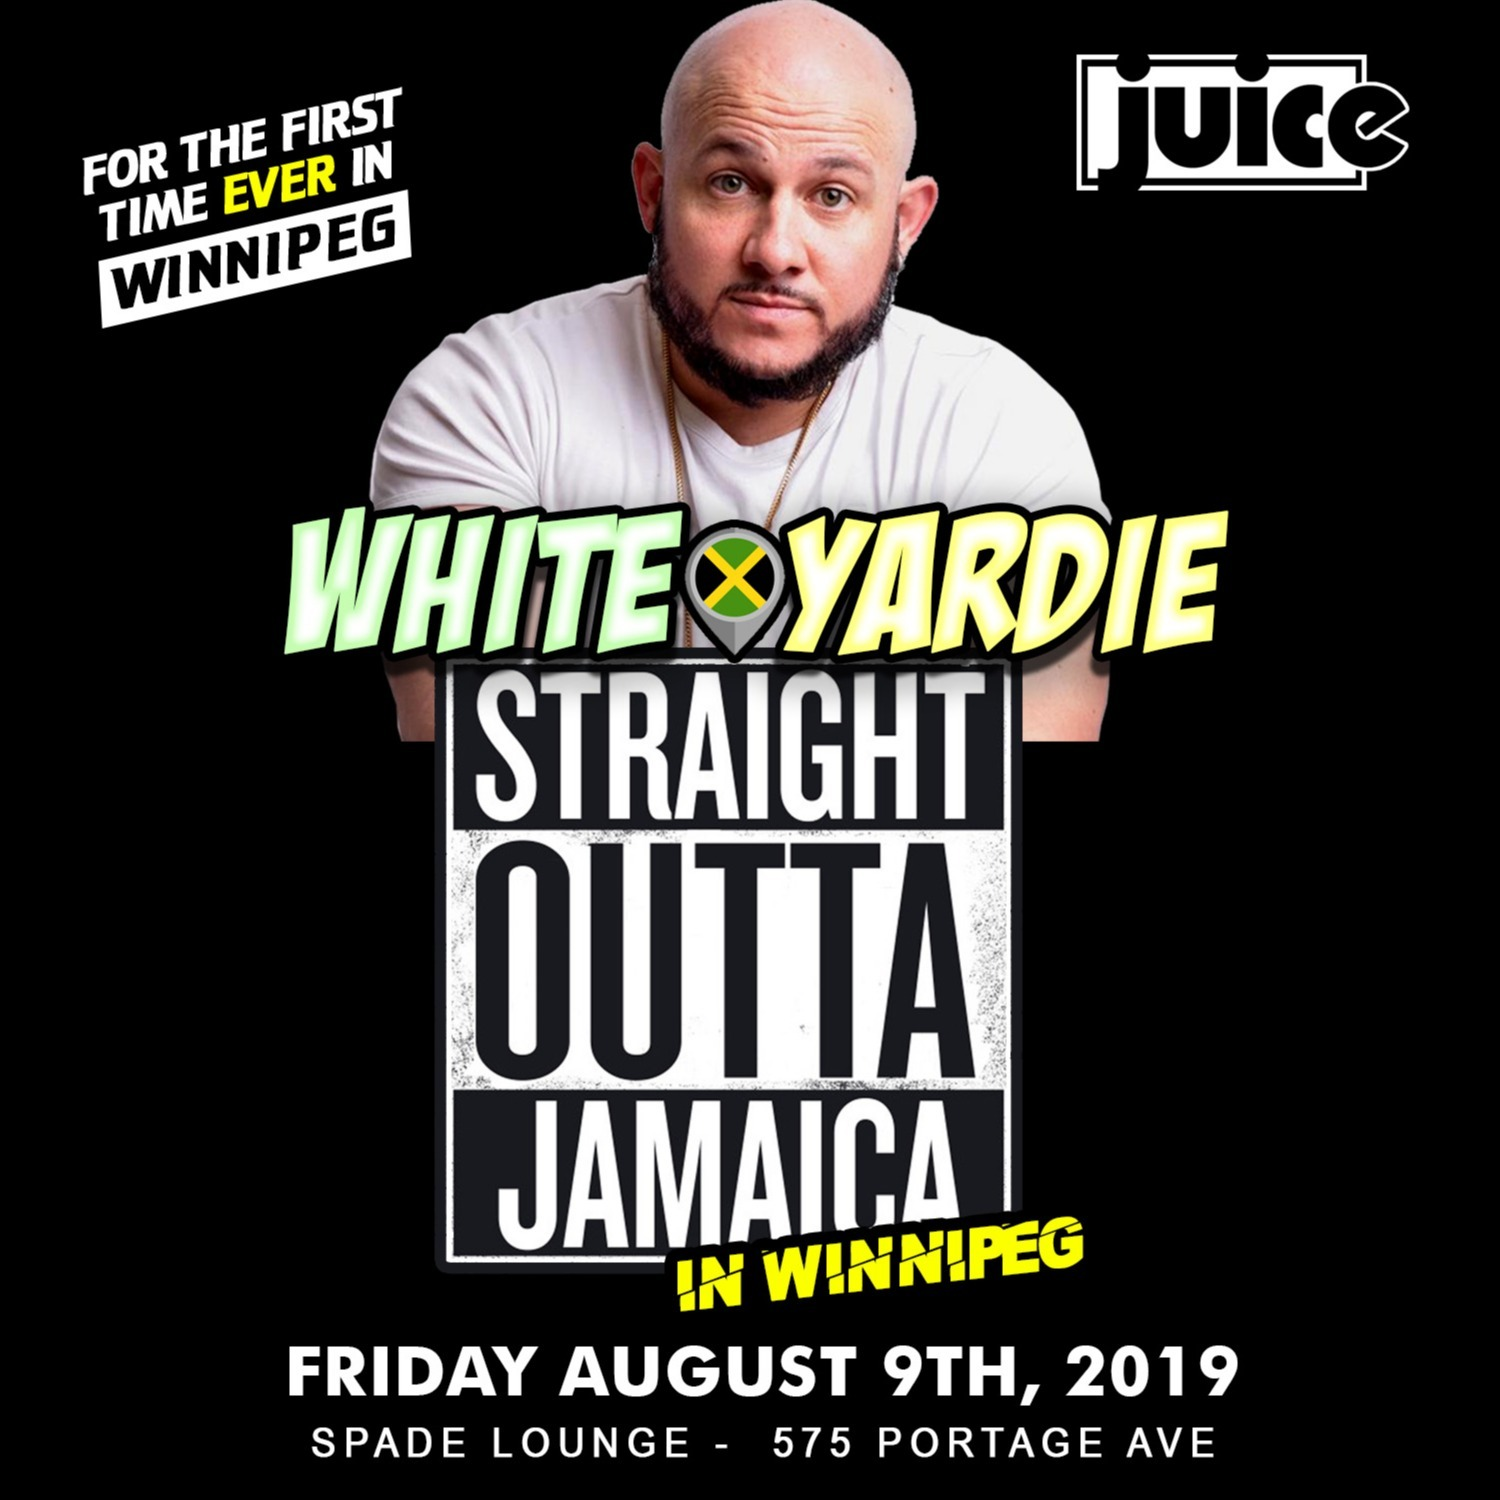 Juice Comedy presents WHITE YARDIE'S 'Straight Outta Jamaica' - WINNIPEG